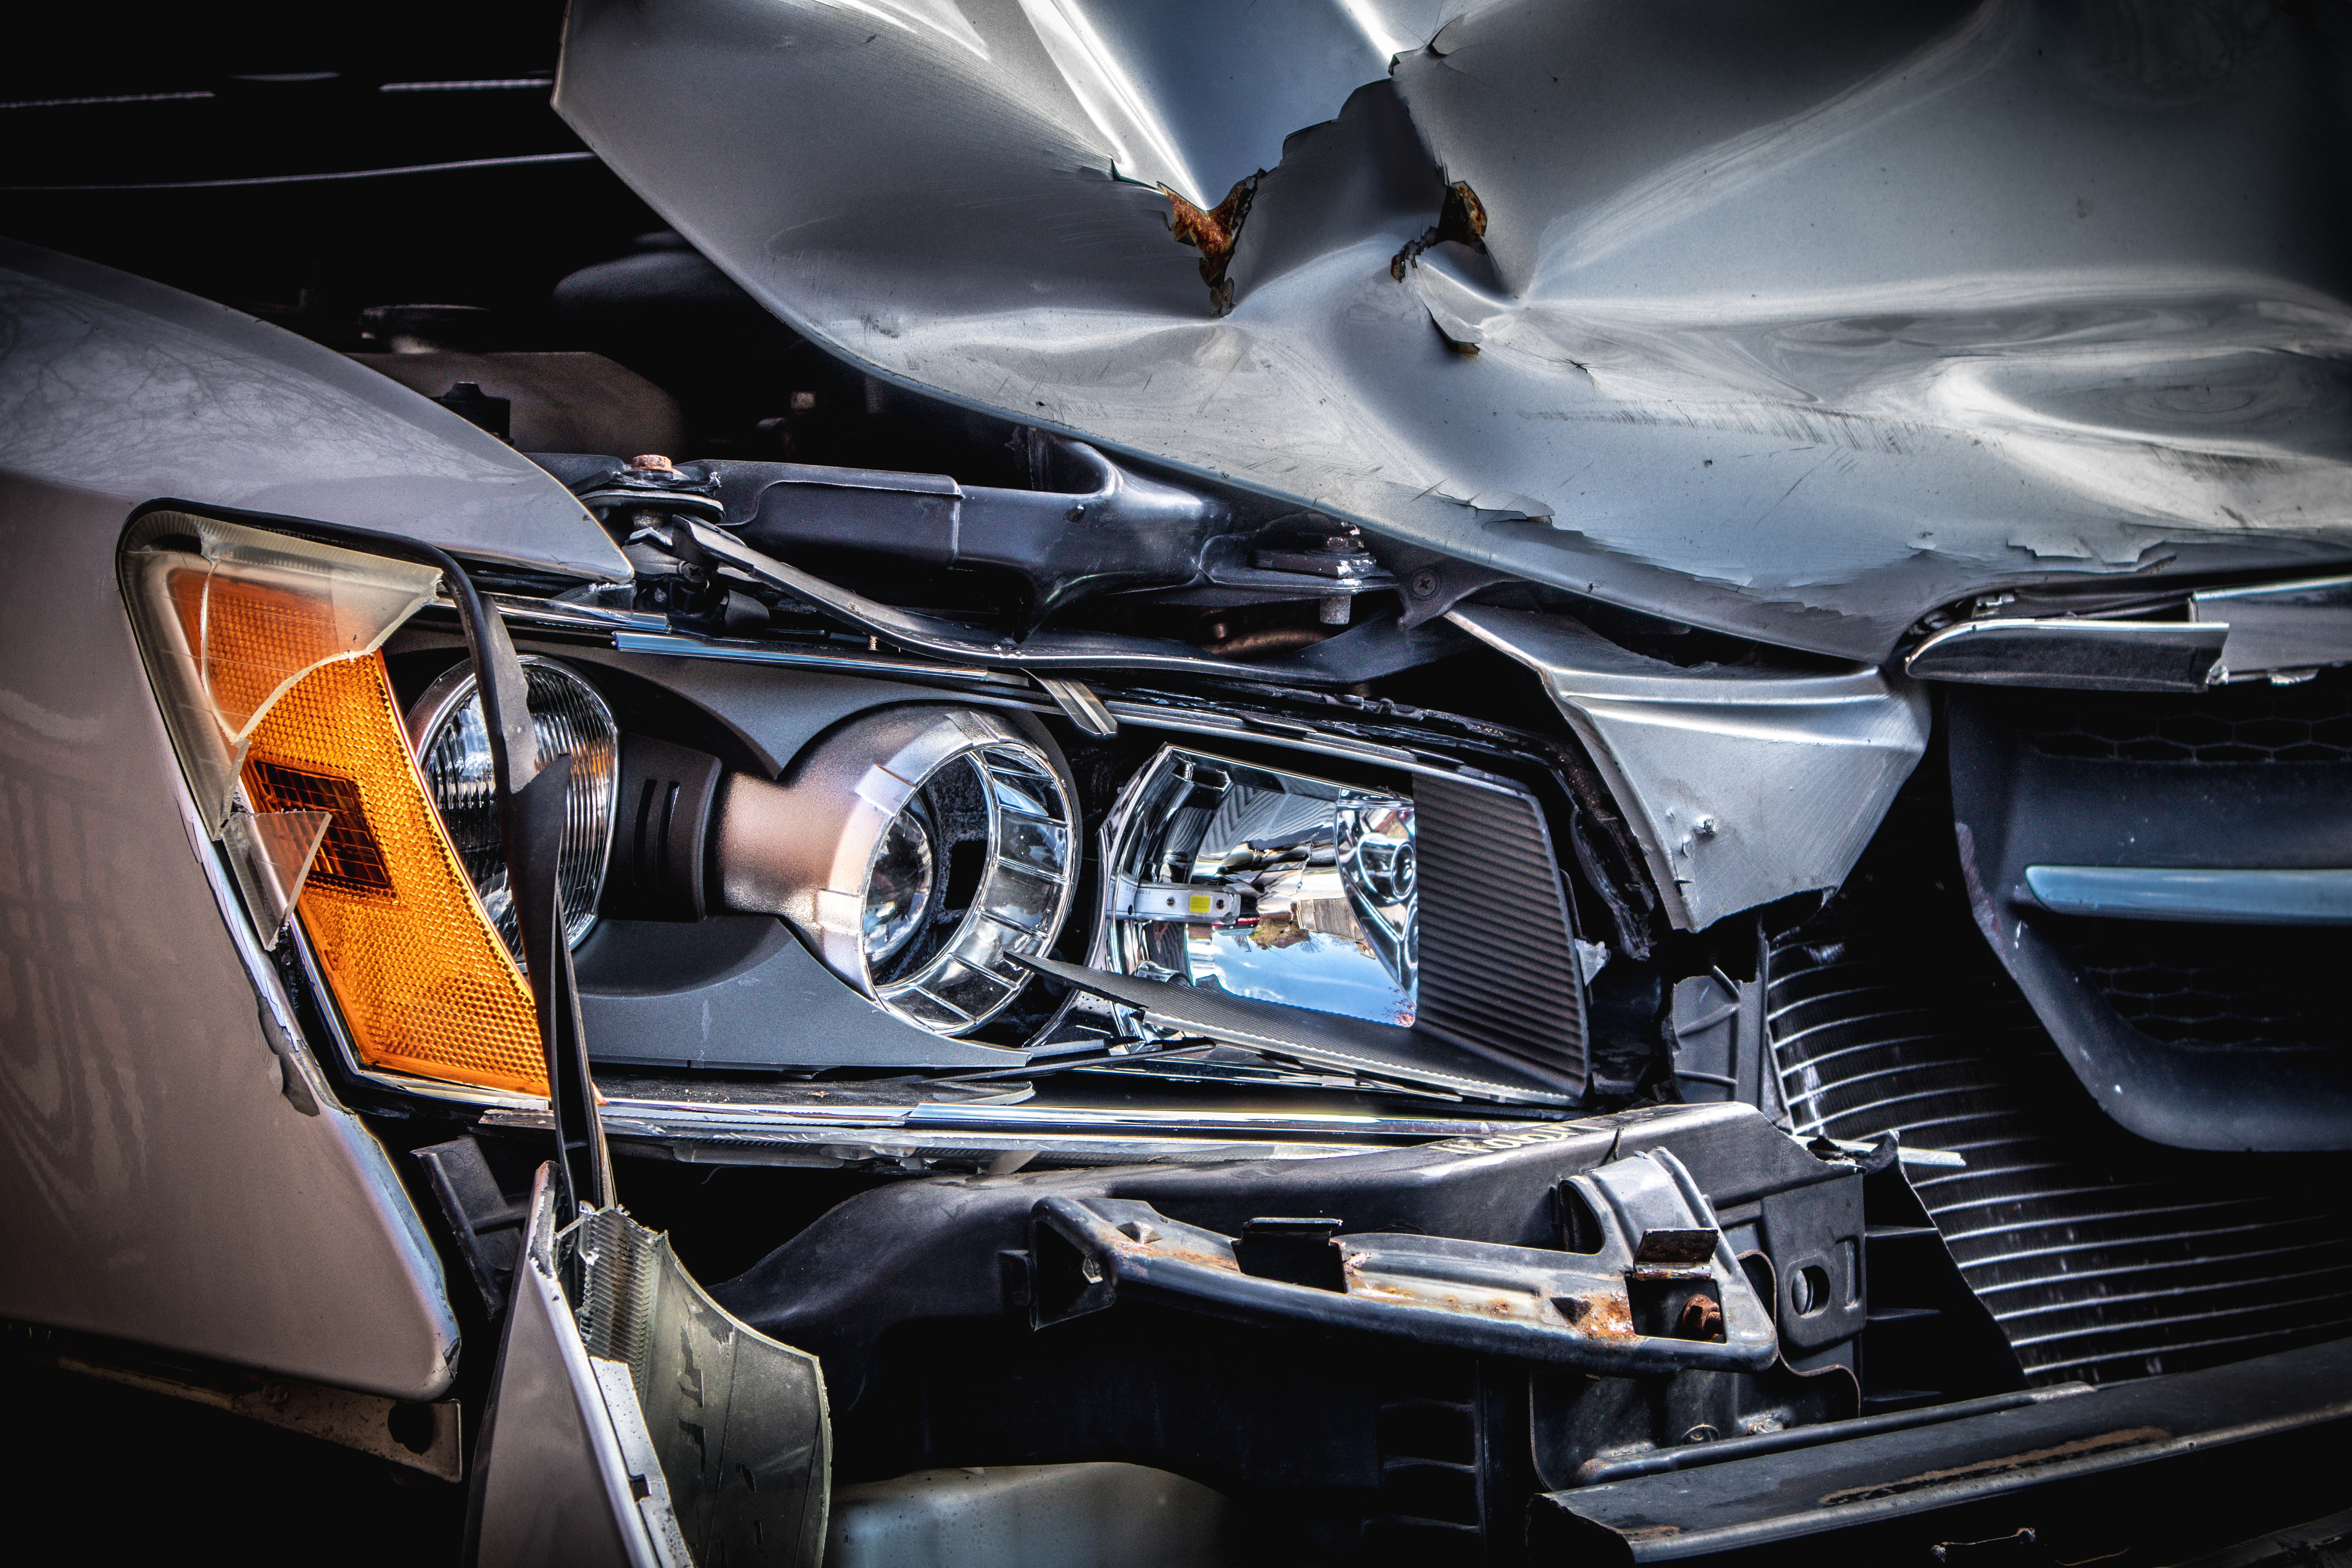 Protecting yourself against tow truck fraud